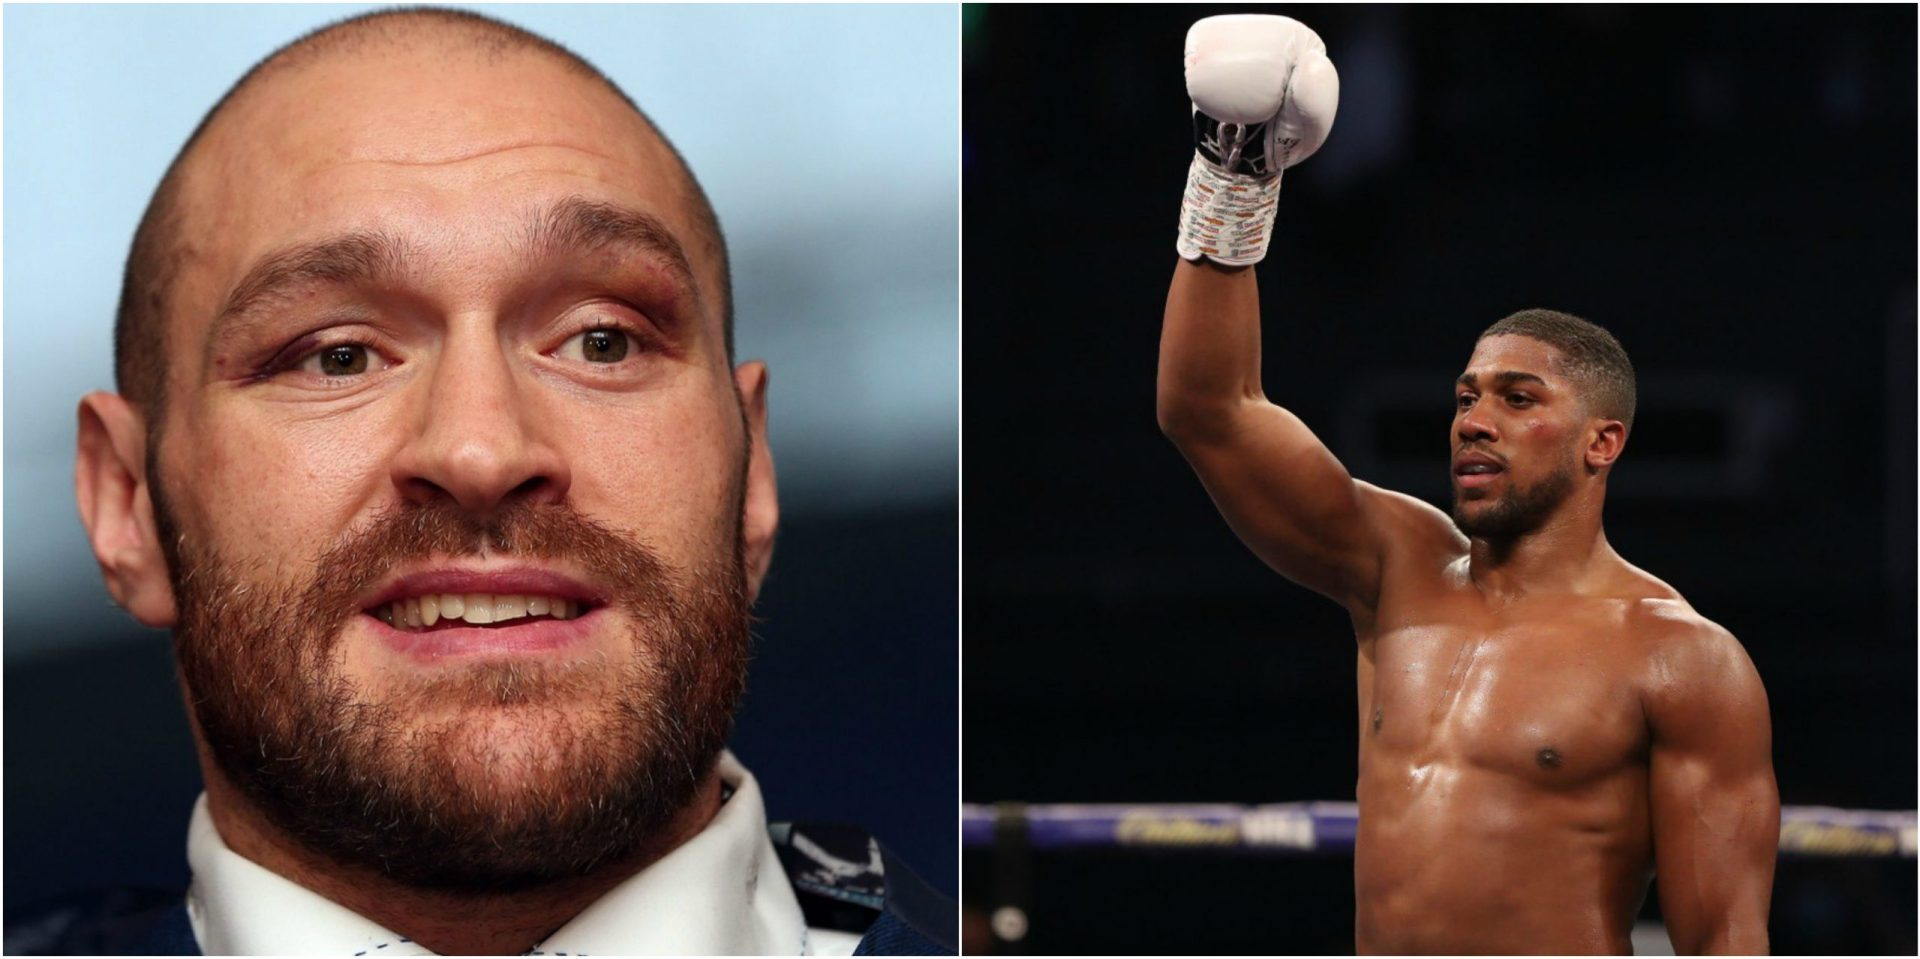 Tyson Fury challenges Anthony Joshua, claims victory by 3-round KO - THE SPORTS ROOM